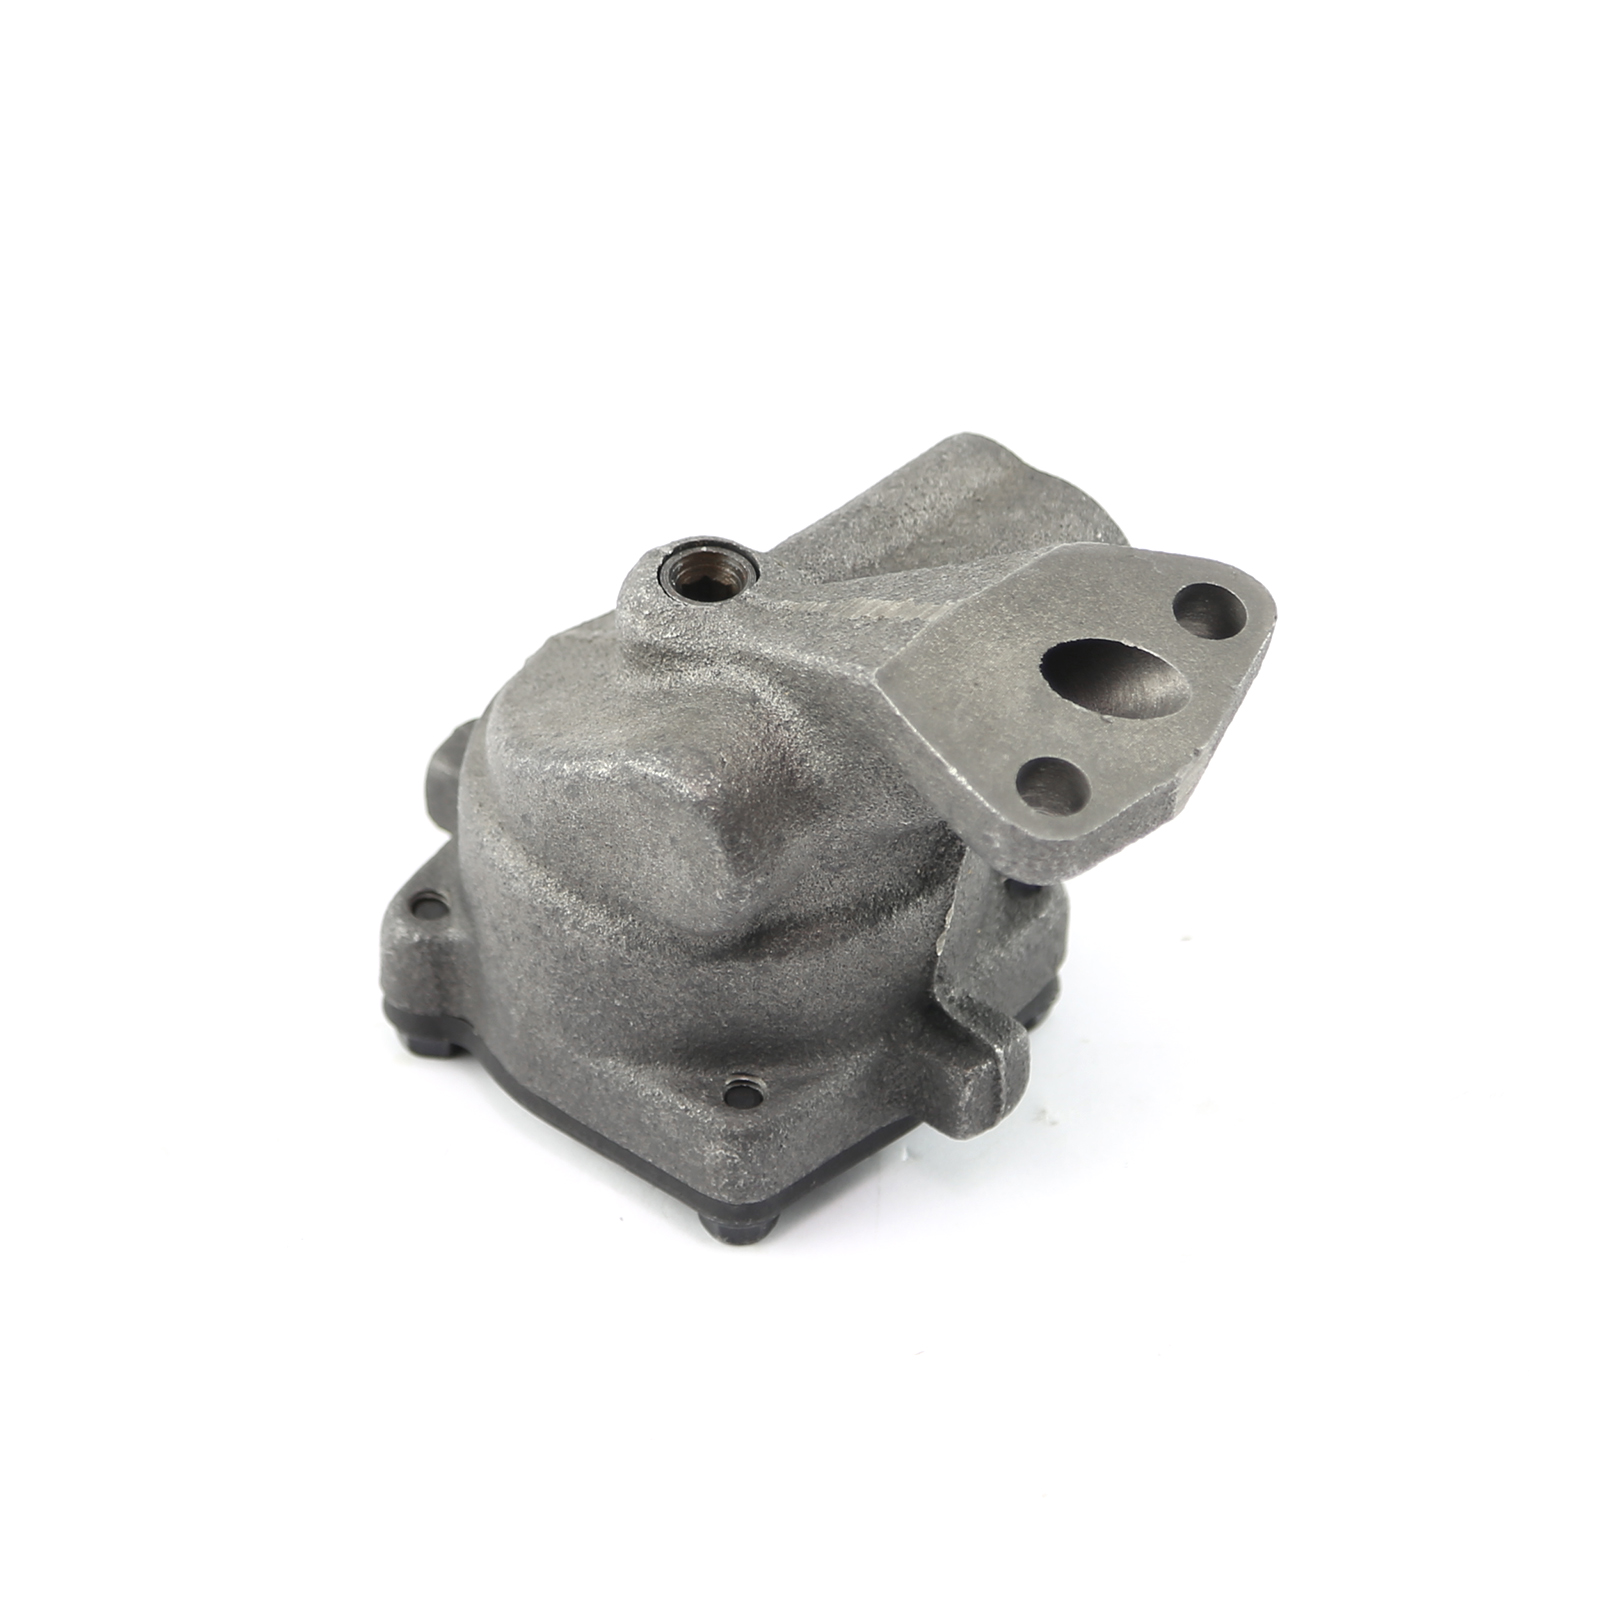 FORD Mercury SAAB Standard Volume Oil Pump